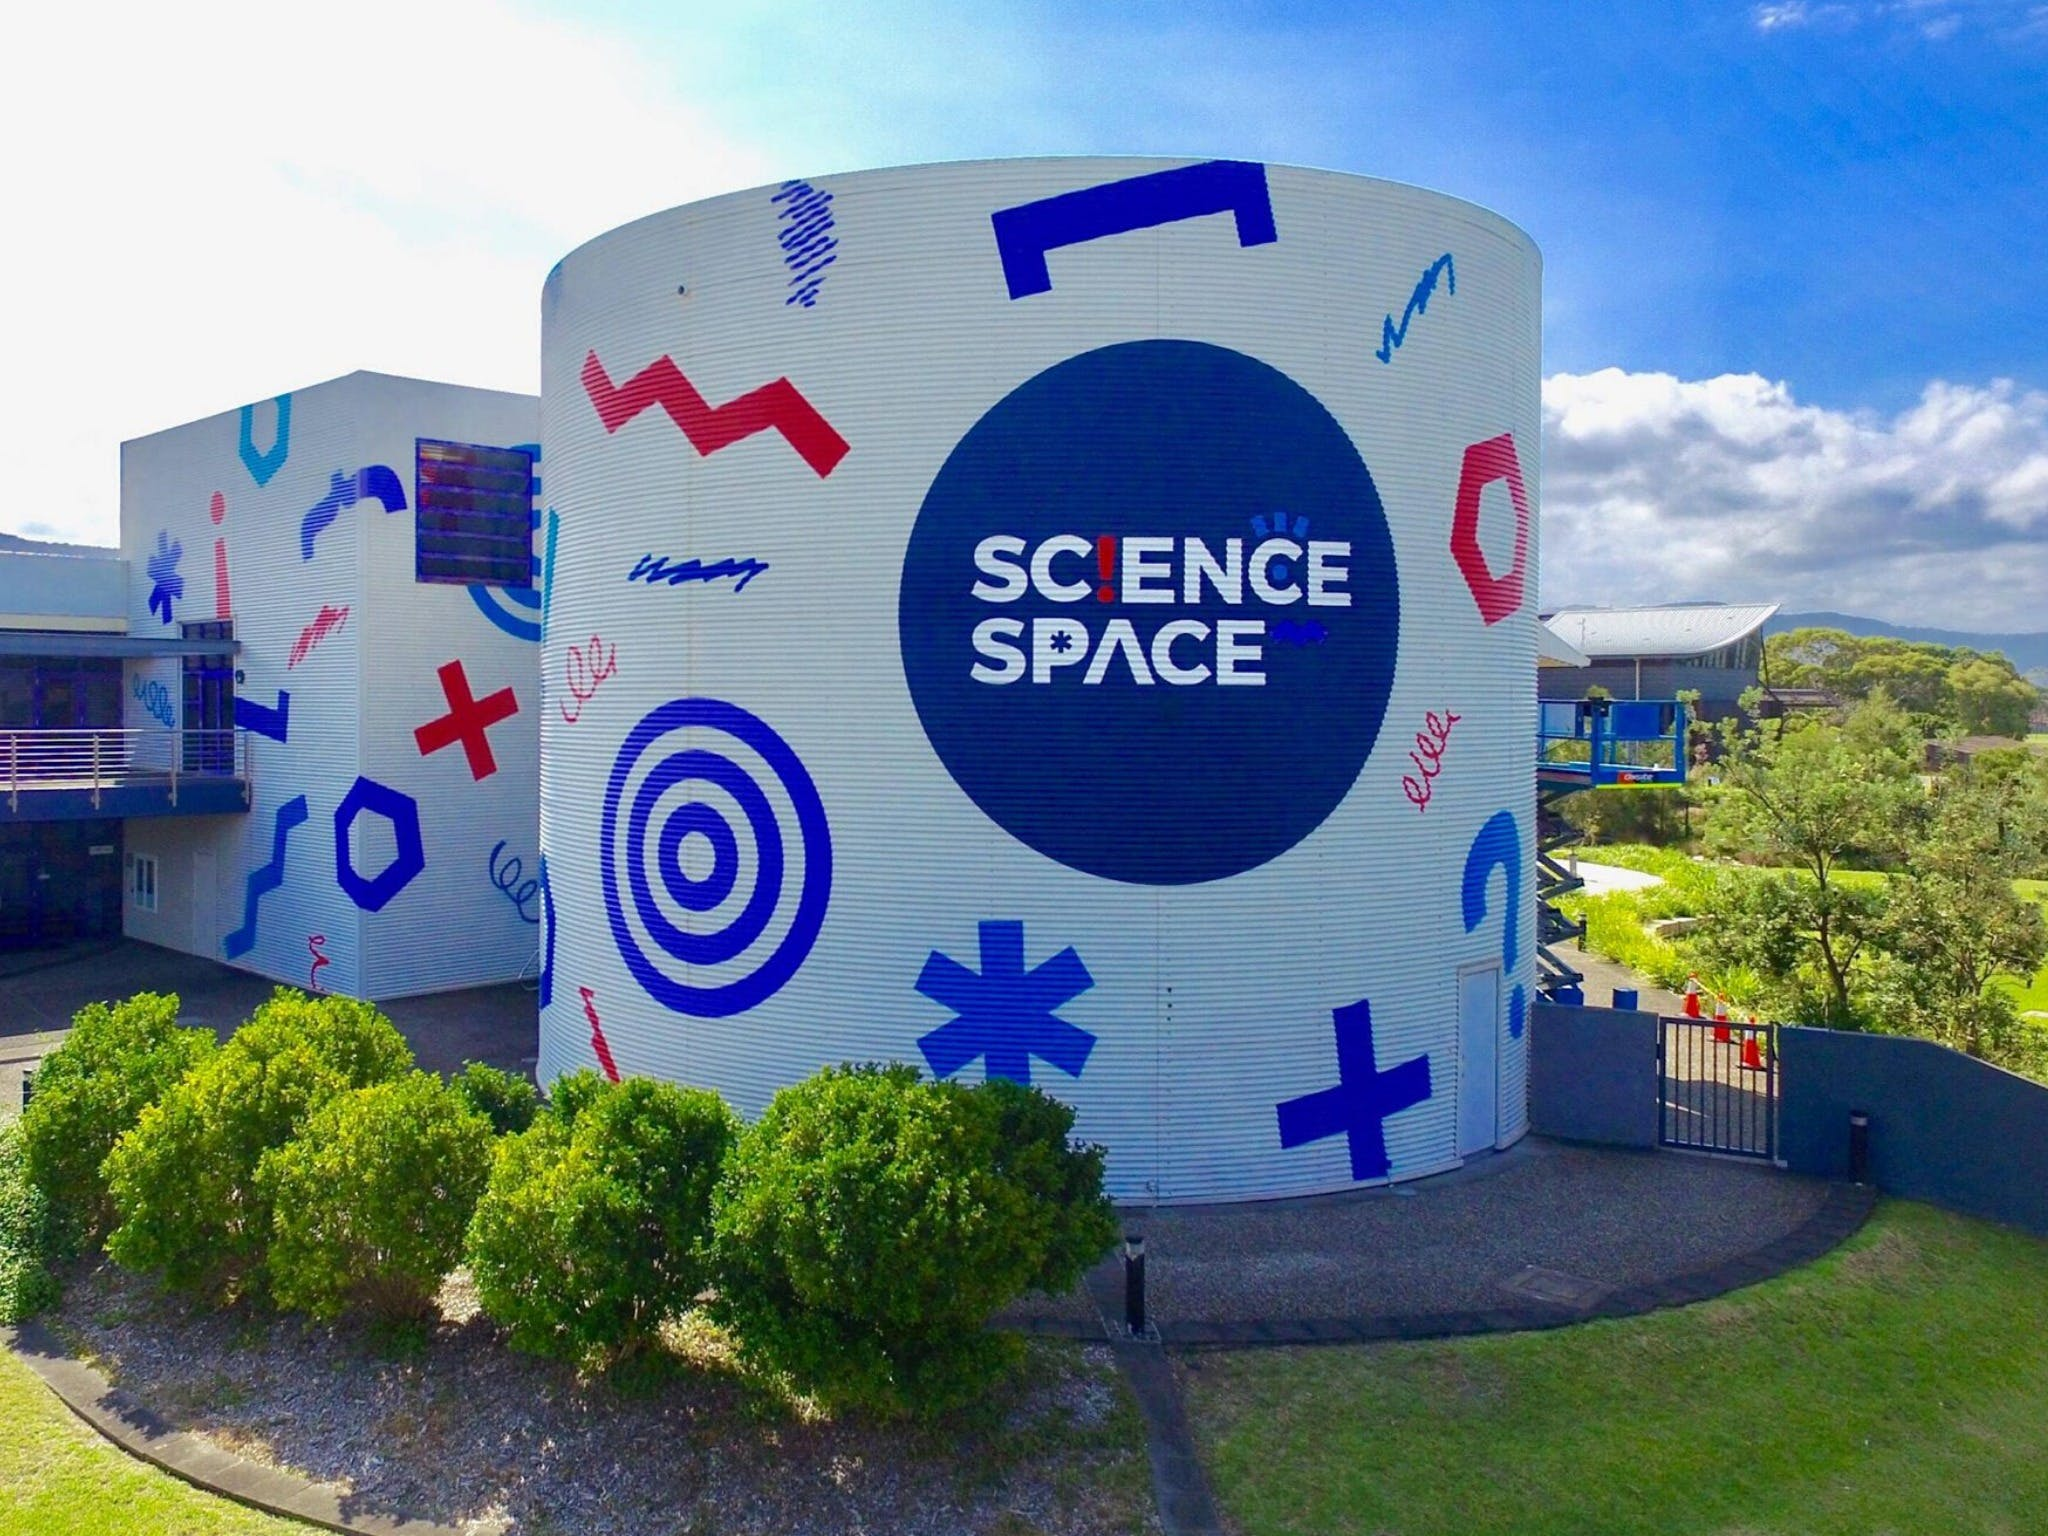 Science Space Grand Reopening Celebration - Pubs Sydney